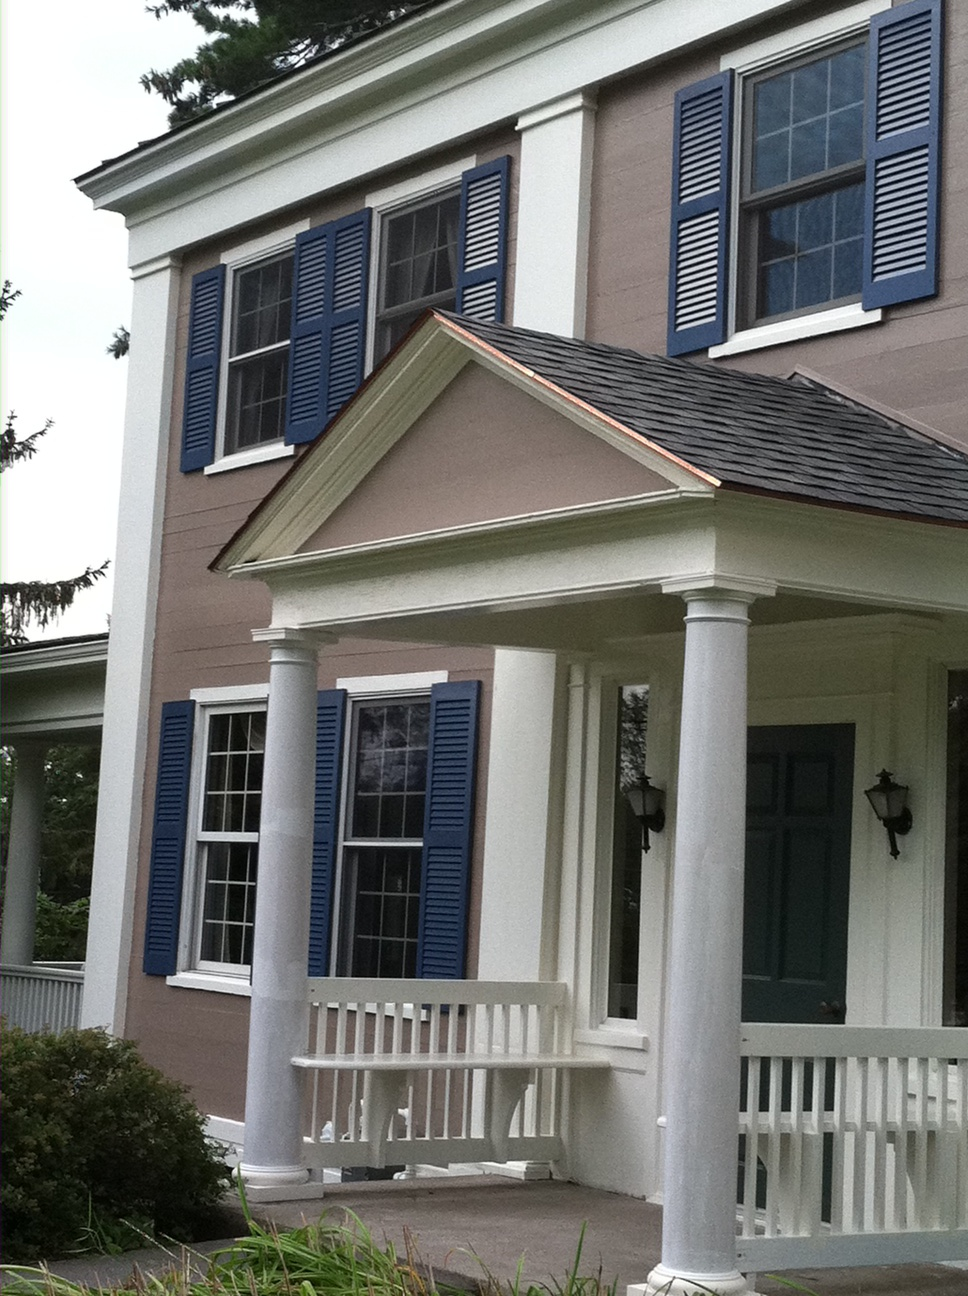 The Taupe Siding Has The Most Interesting Pink, Almost Purple, Undertone  That Changes The Way We See The House Color ...